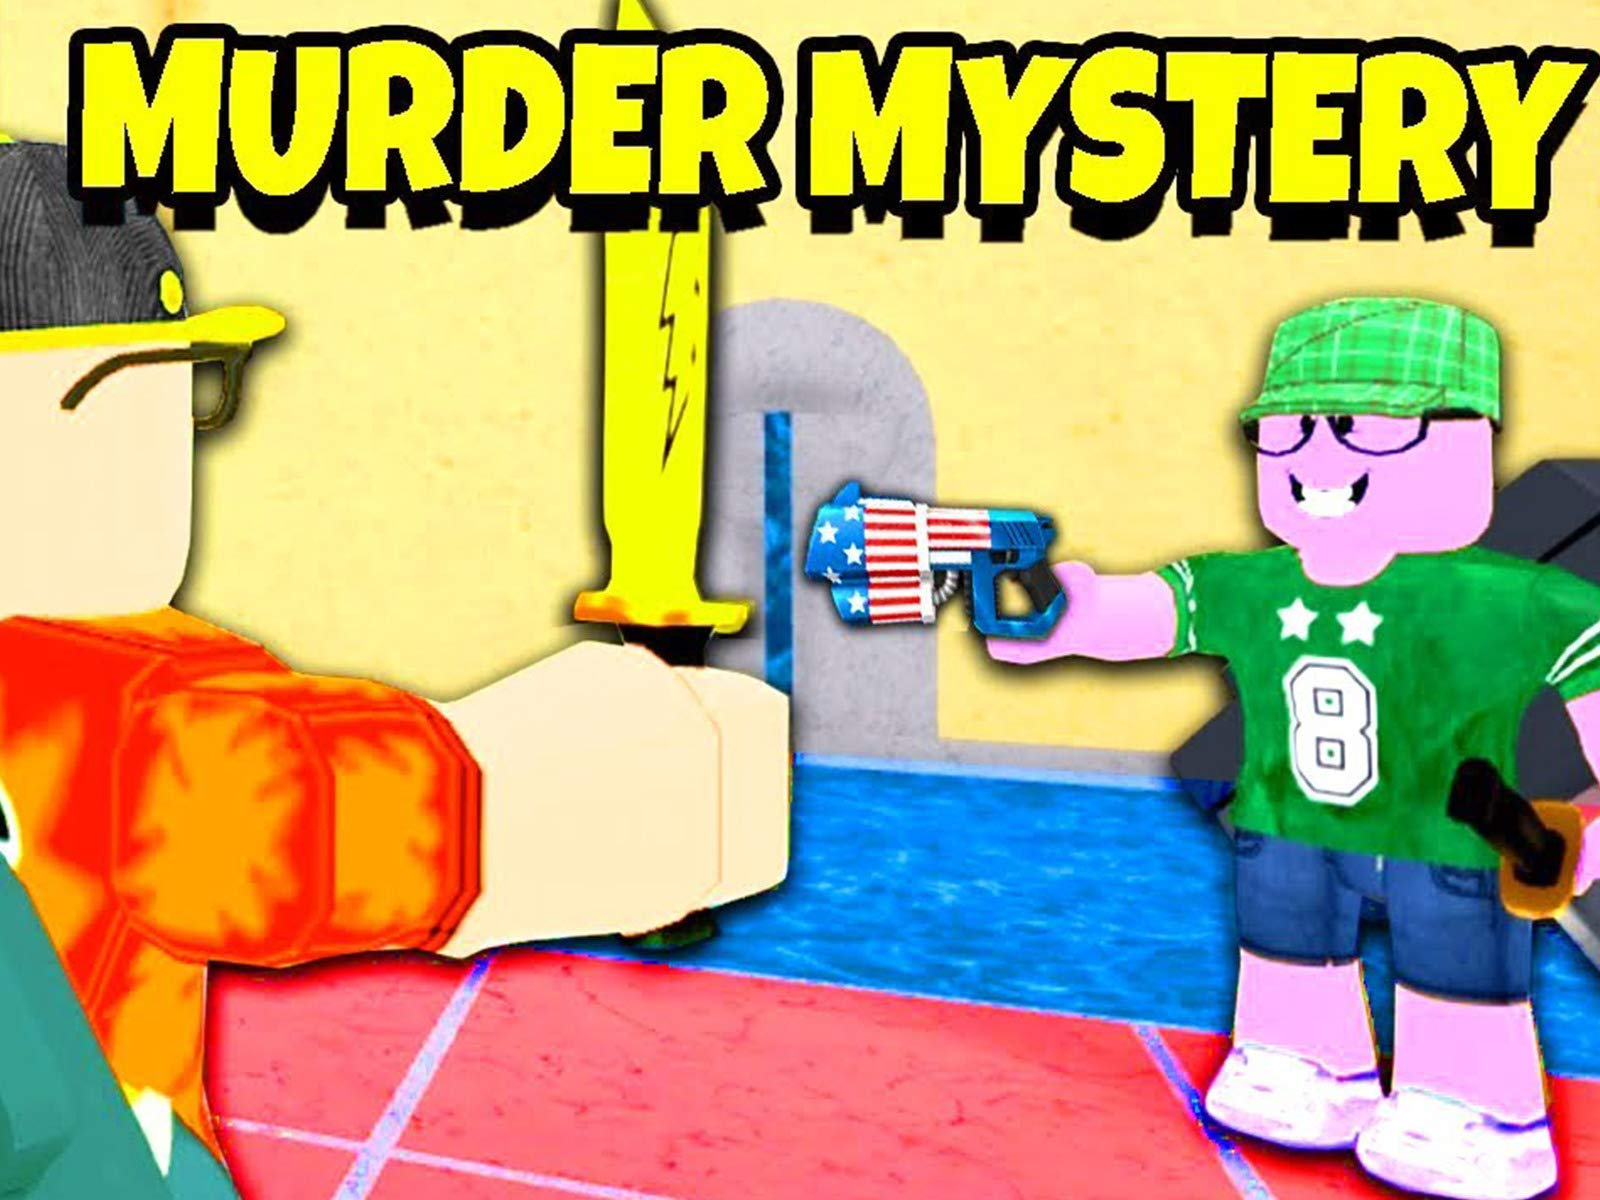 Roblox Murder Mystery Game Tutorial Roblox Free Accounts Watch Clip See Deng Prime Video